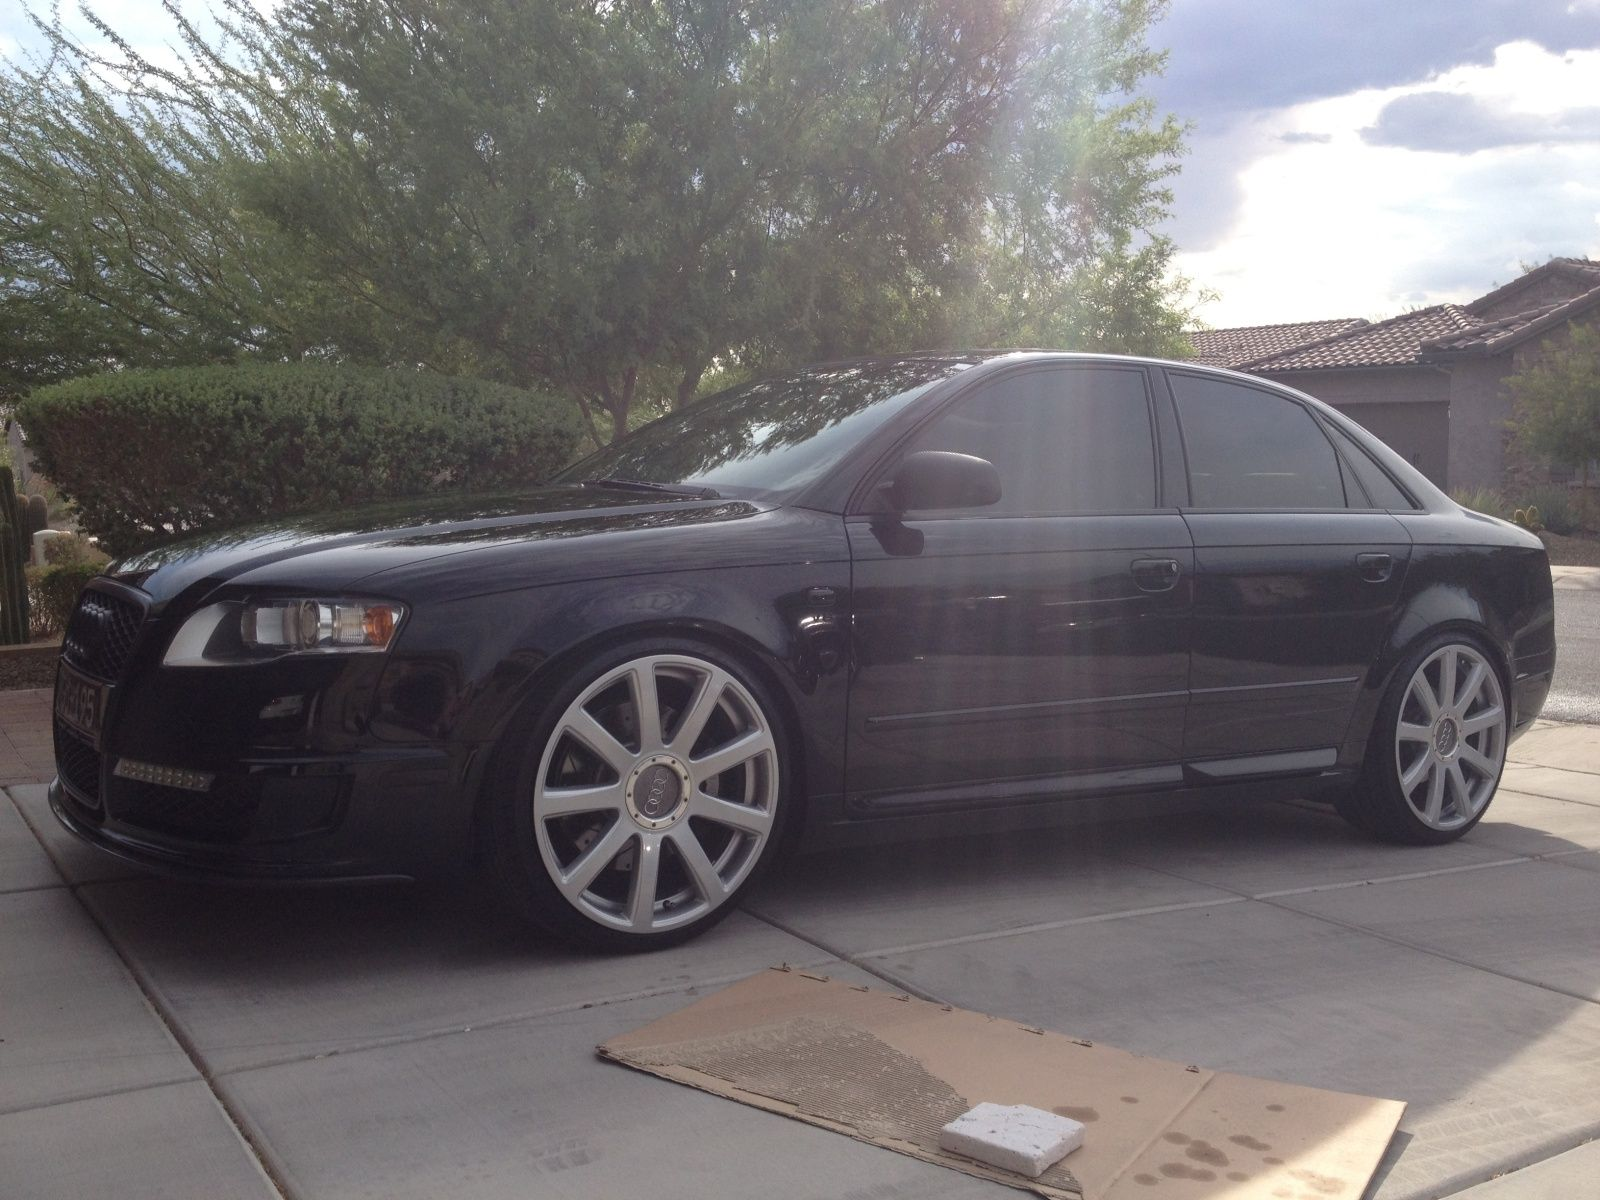 Audi A4 B7 Owners Manual Forums User Guide That Easy S4 Fuse Box Audizine Pinterest A8 W12 And 20 Rh Com Mods Diagram